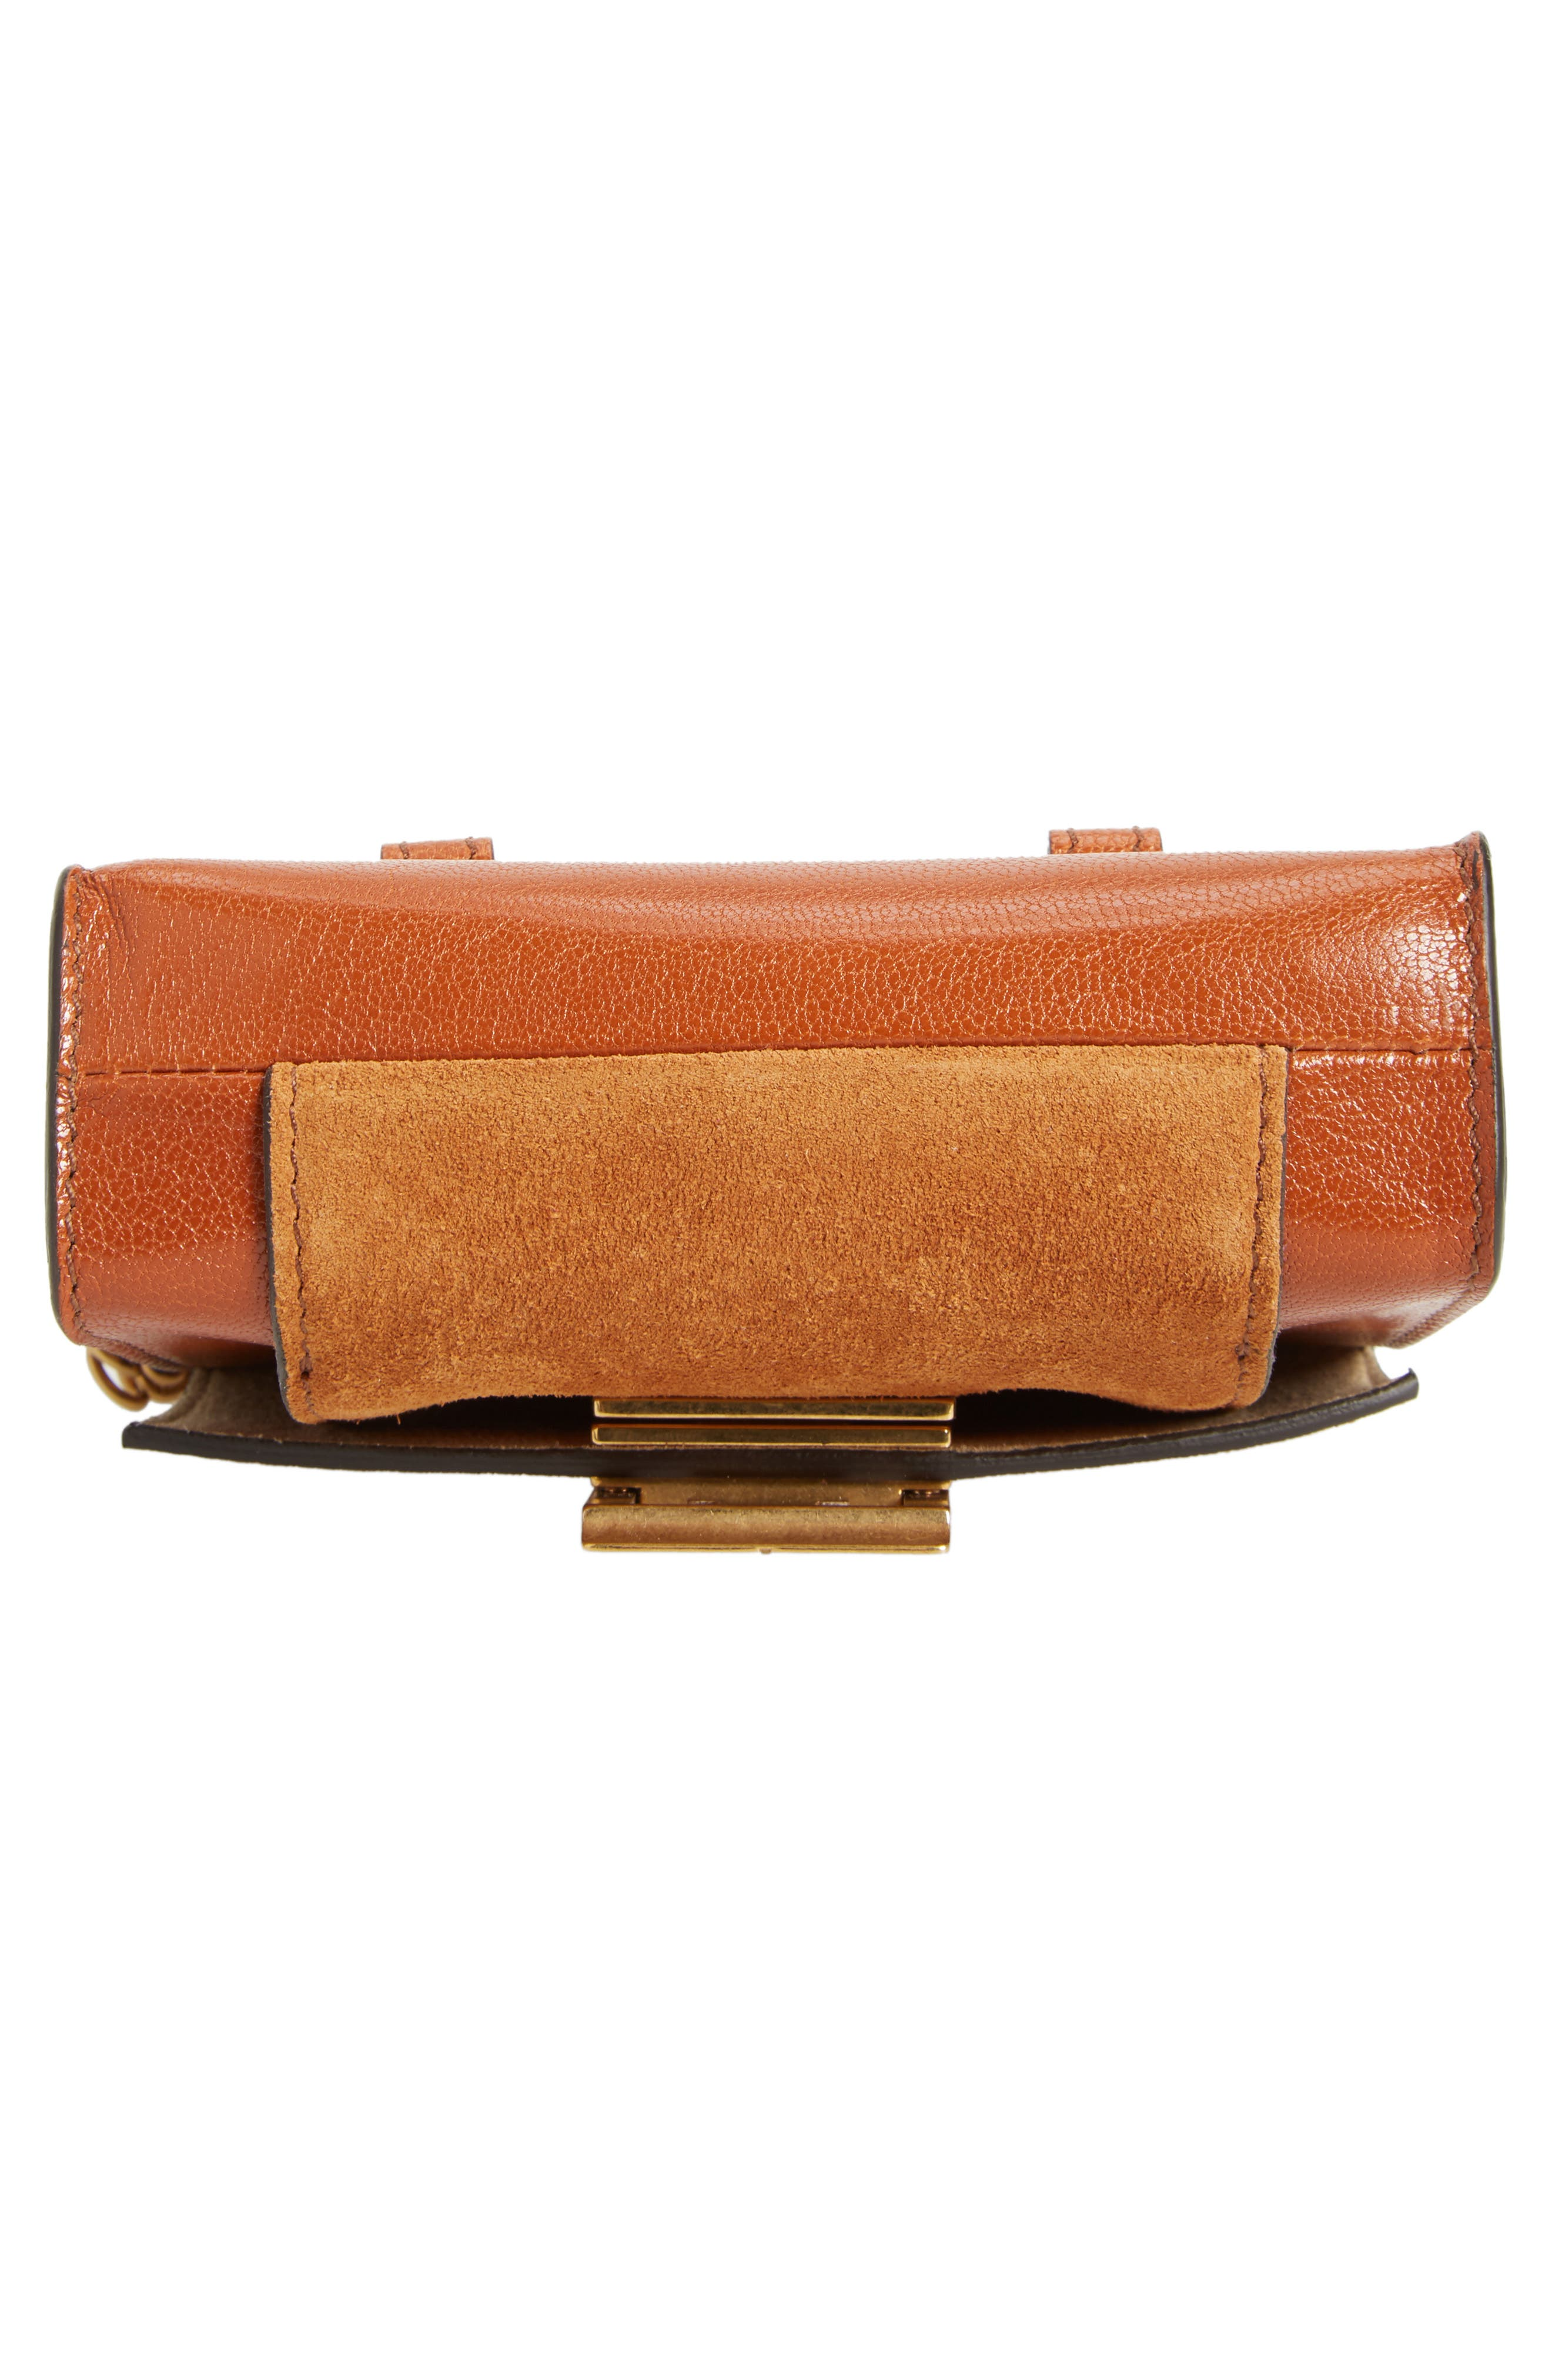 Givency Nano GV3 Leather & Suede Crossbody Bag,                             Alternate thumbnail 6, color,                             Chestnut